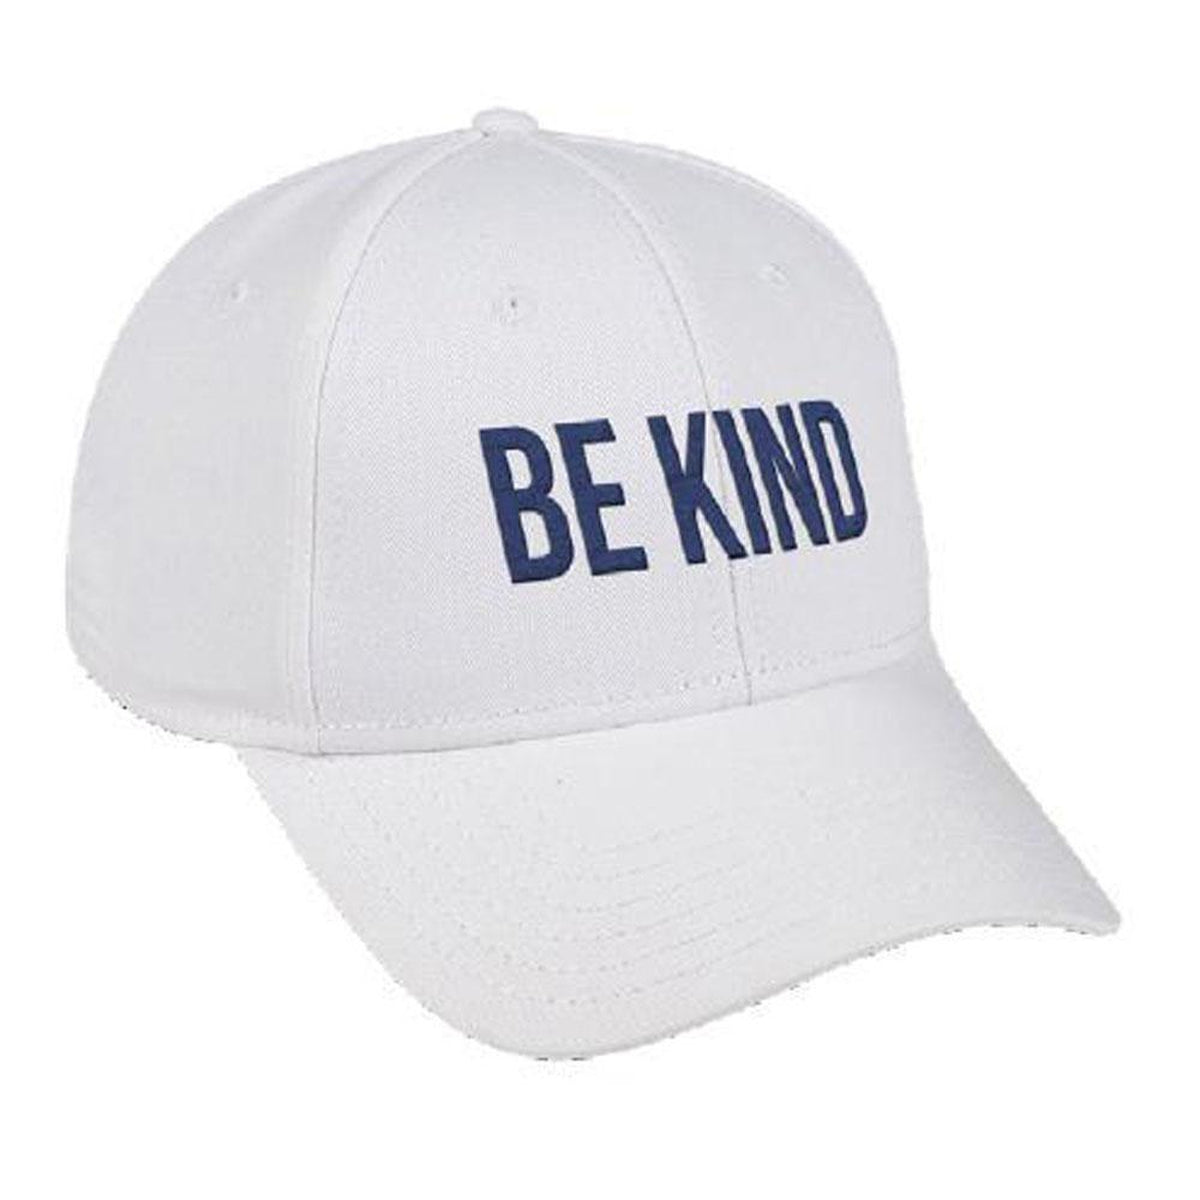 ellen DeGeneres Show be kind hat white